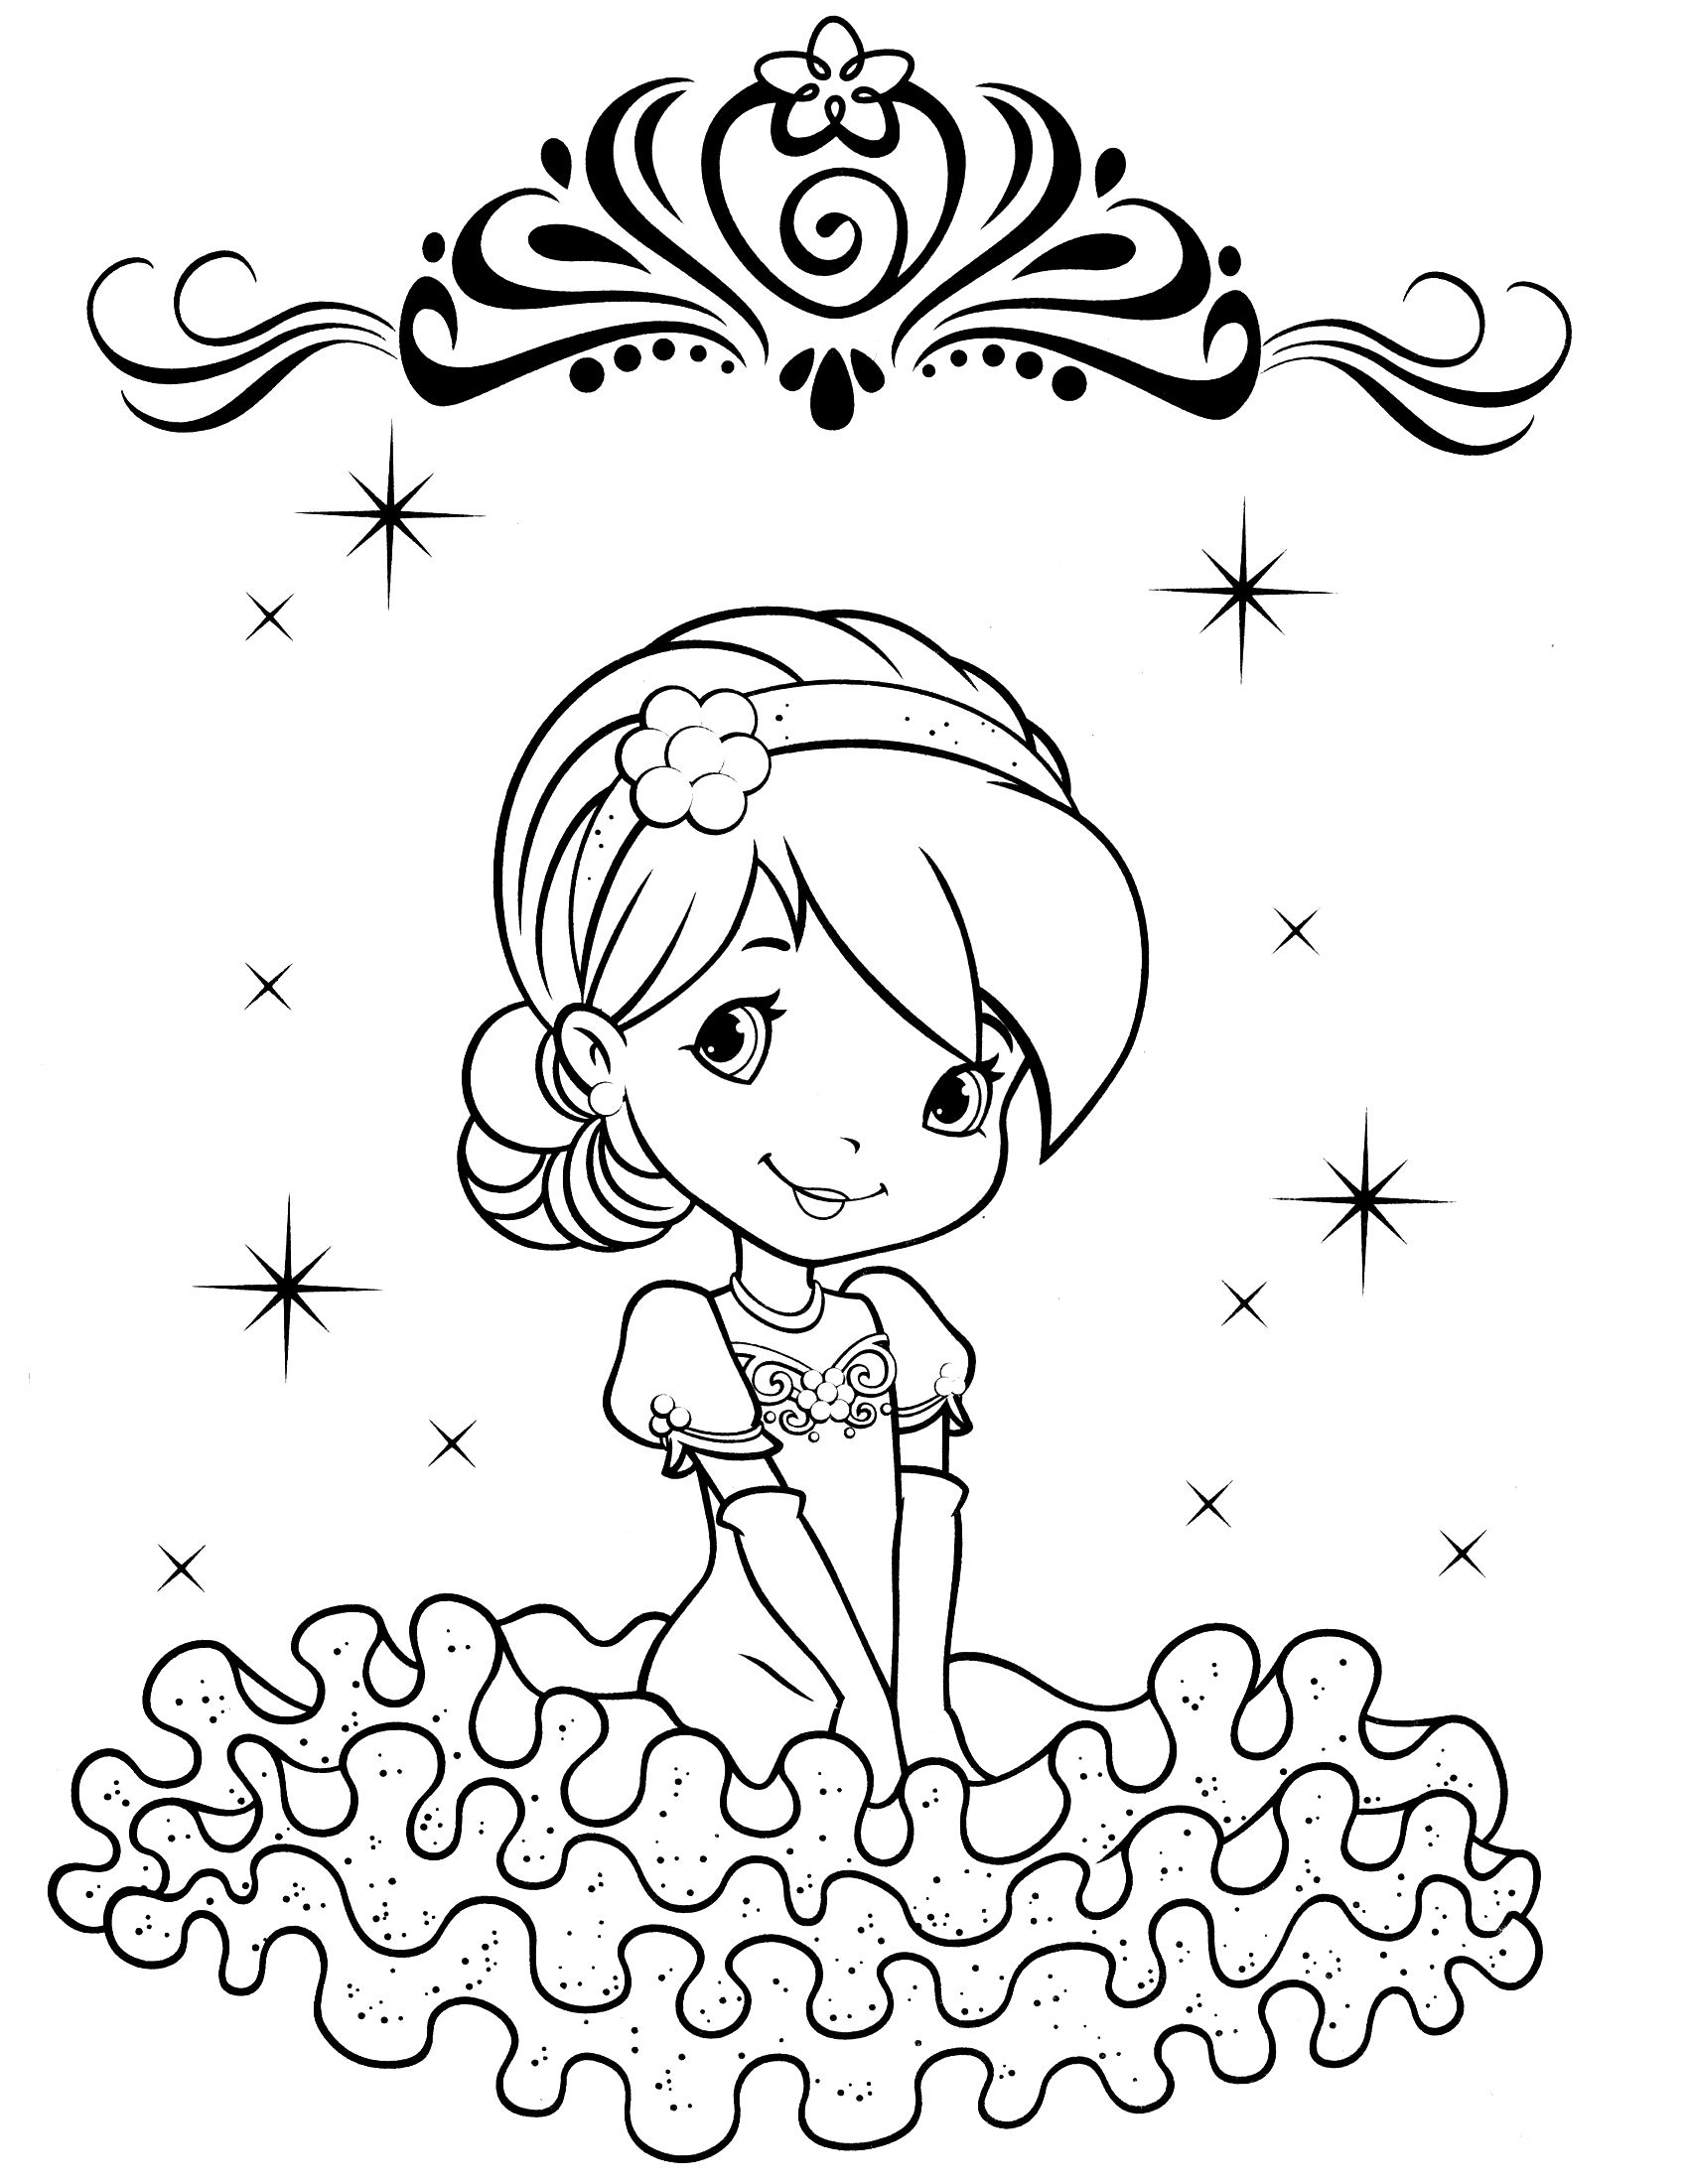 strawberry shortcake coloring page | Coloring books | Pinterest ...